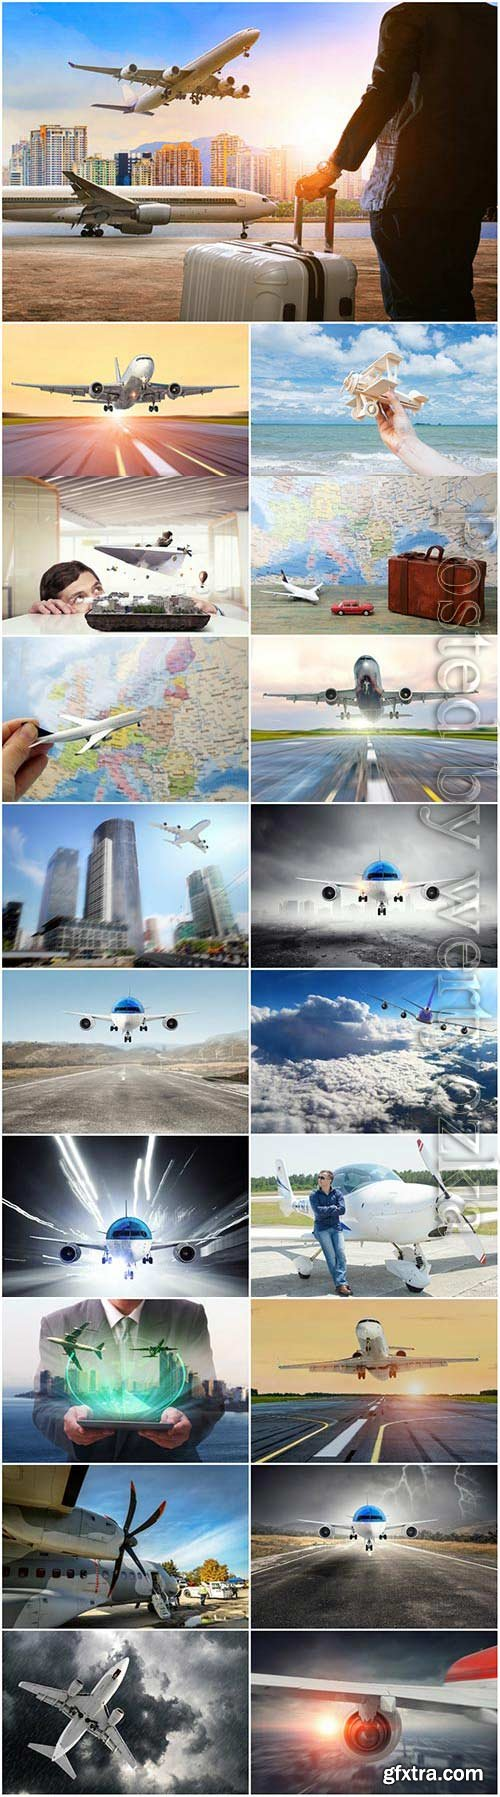 Airplanes, travel and vacation concept stock photo